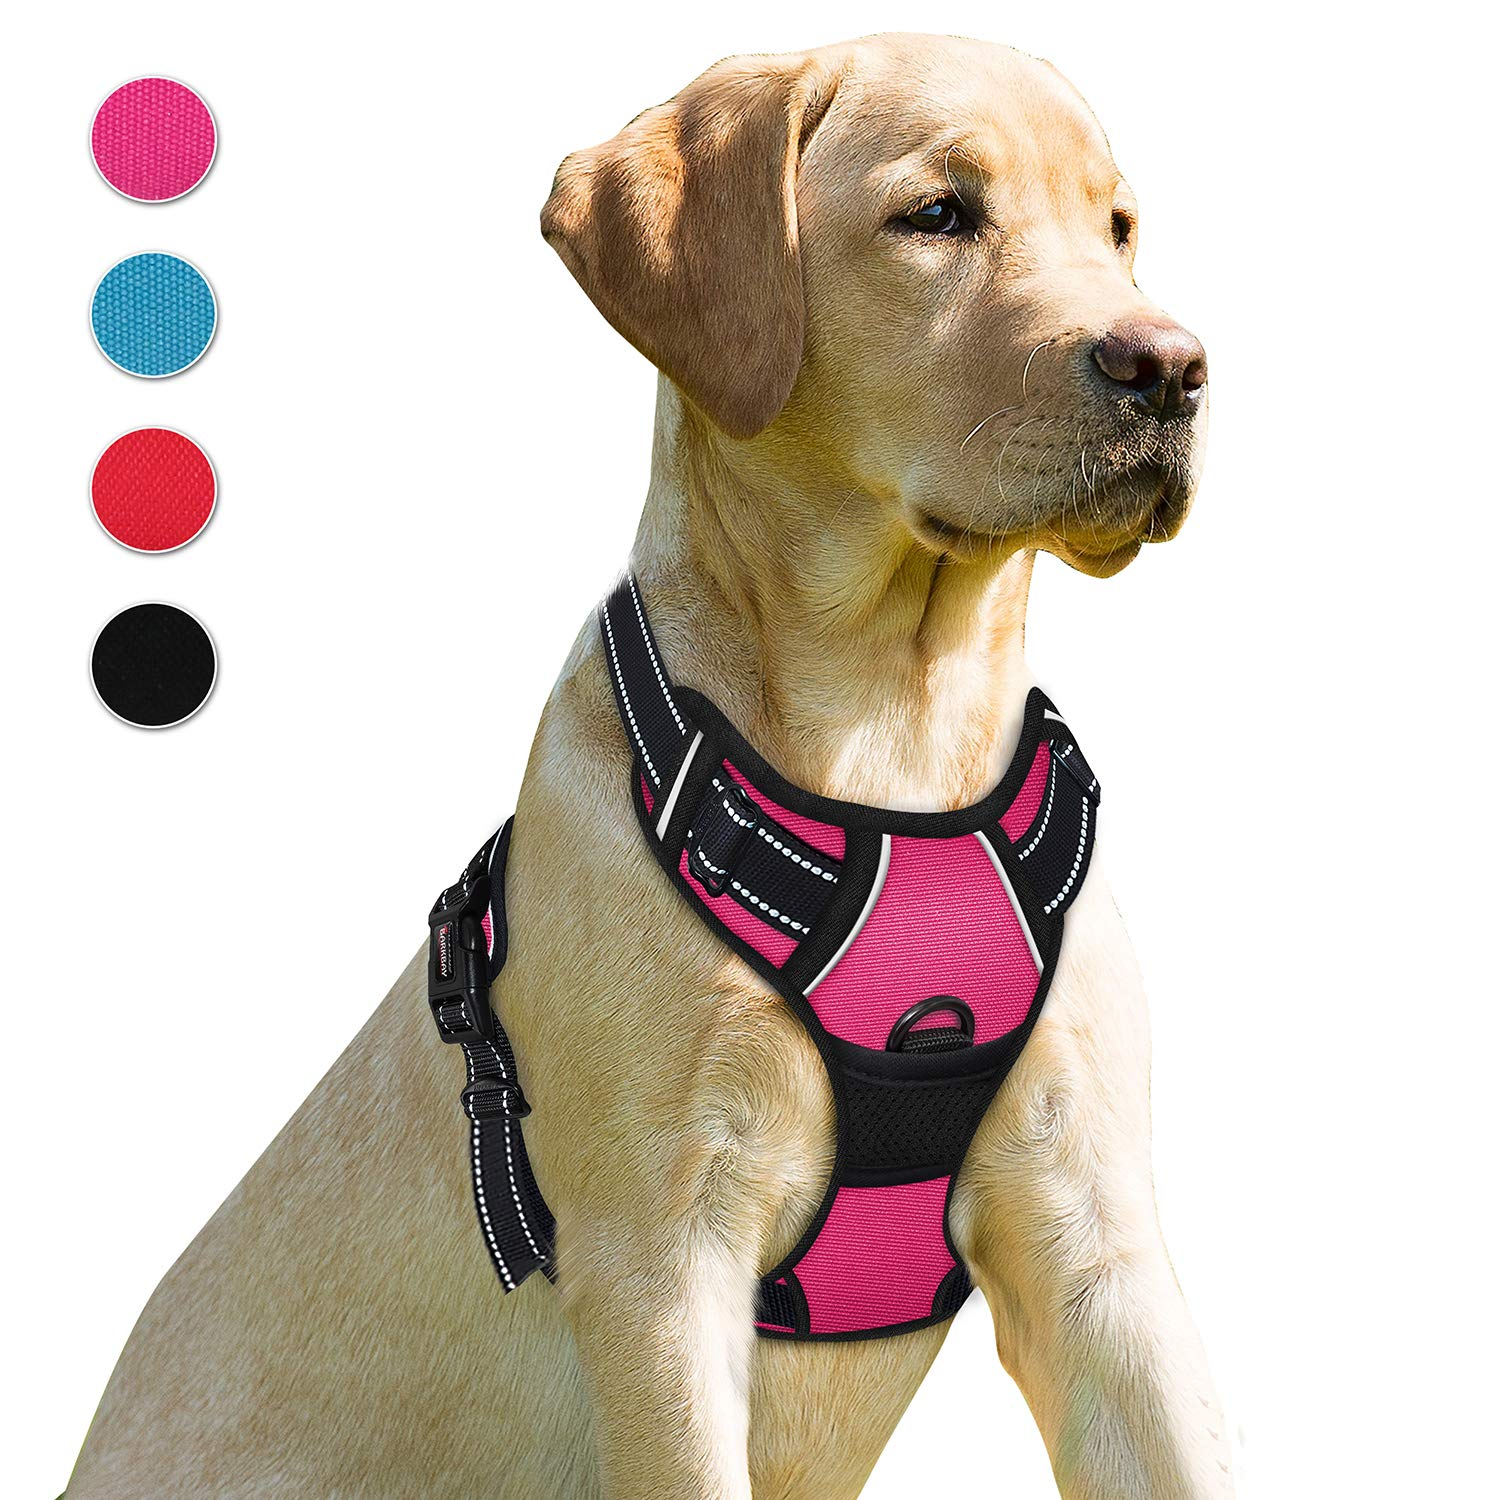 BARKBAY No Pull Dog Harness Front Clip Heavy Duty Reflective Easy Control Handle for Large Dog Walking by BARKBAY